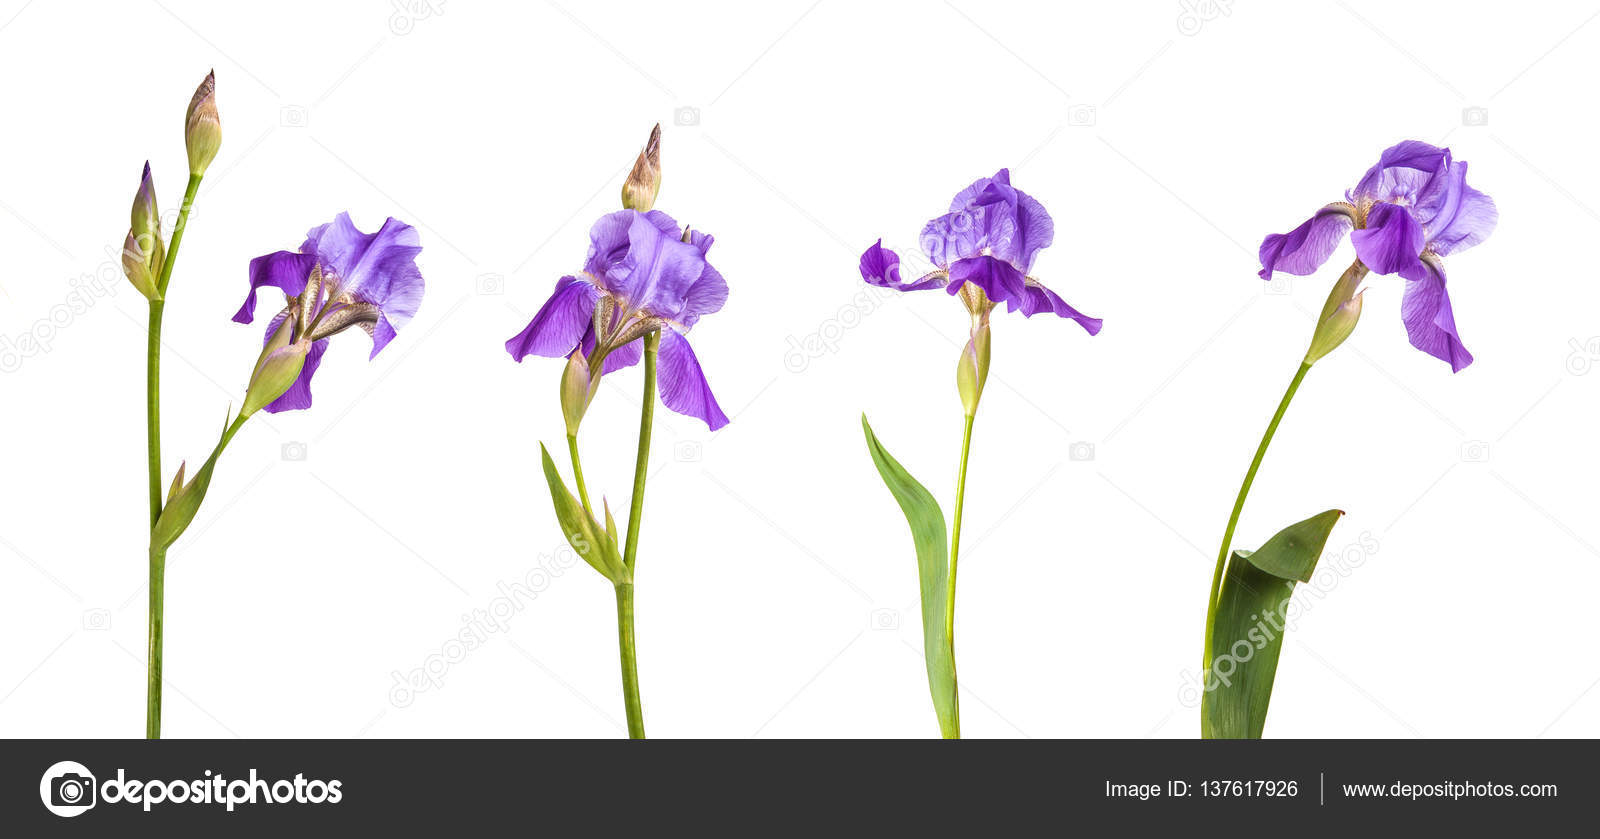 Purple iris flower isolation is not a white background set stock purple iris flower isolation is not a white background set stock photo izmirmasajfo